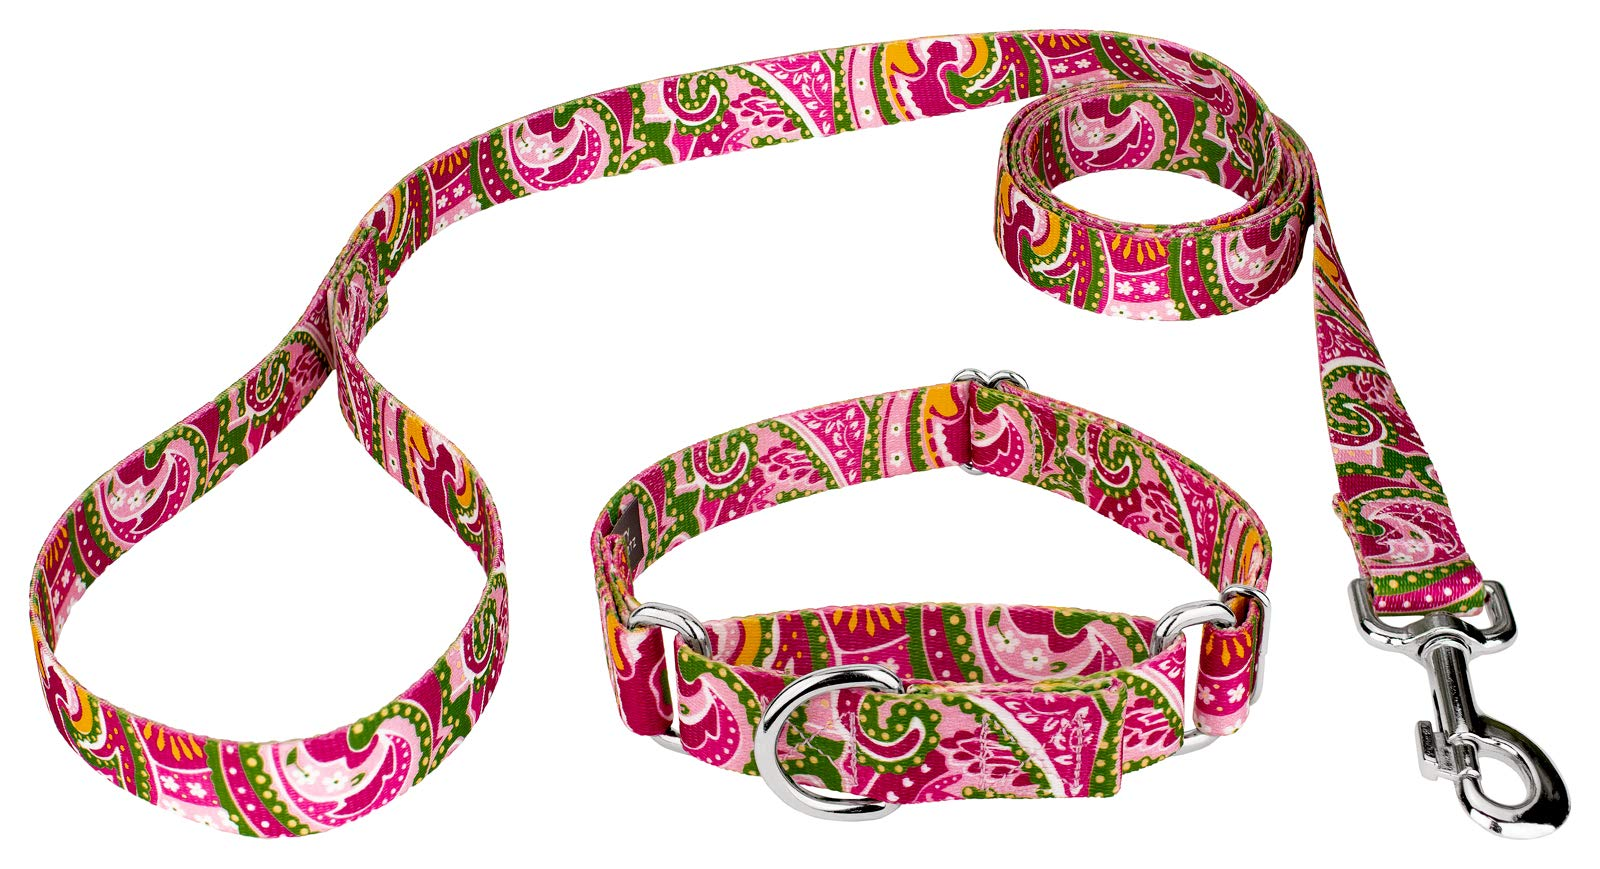 Country Brook Design Pink Paisley Martingale Dog Collar & Leash - Medium